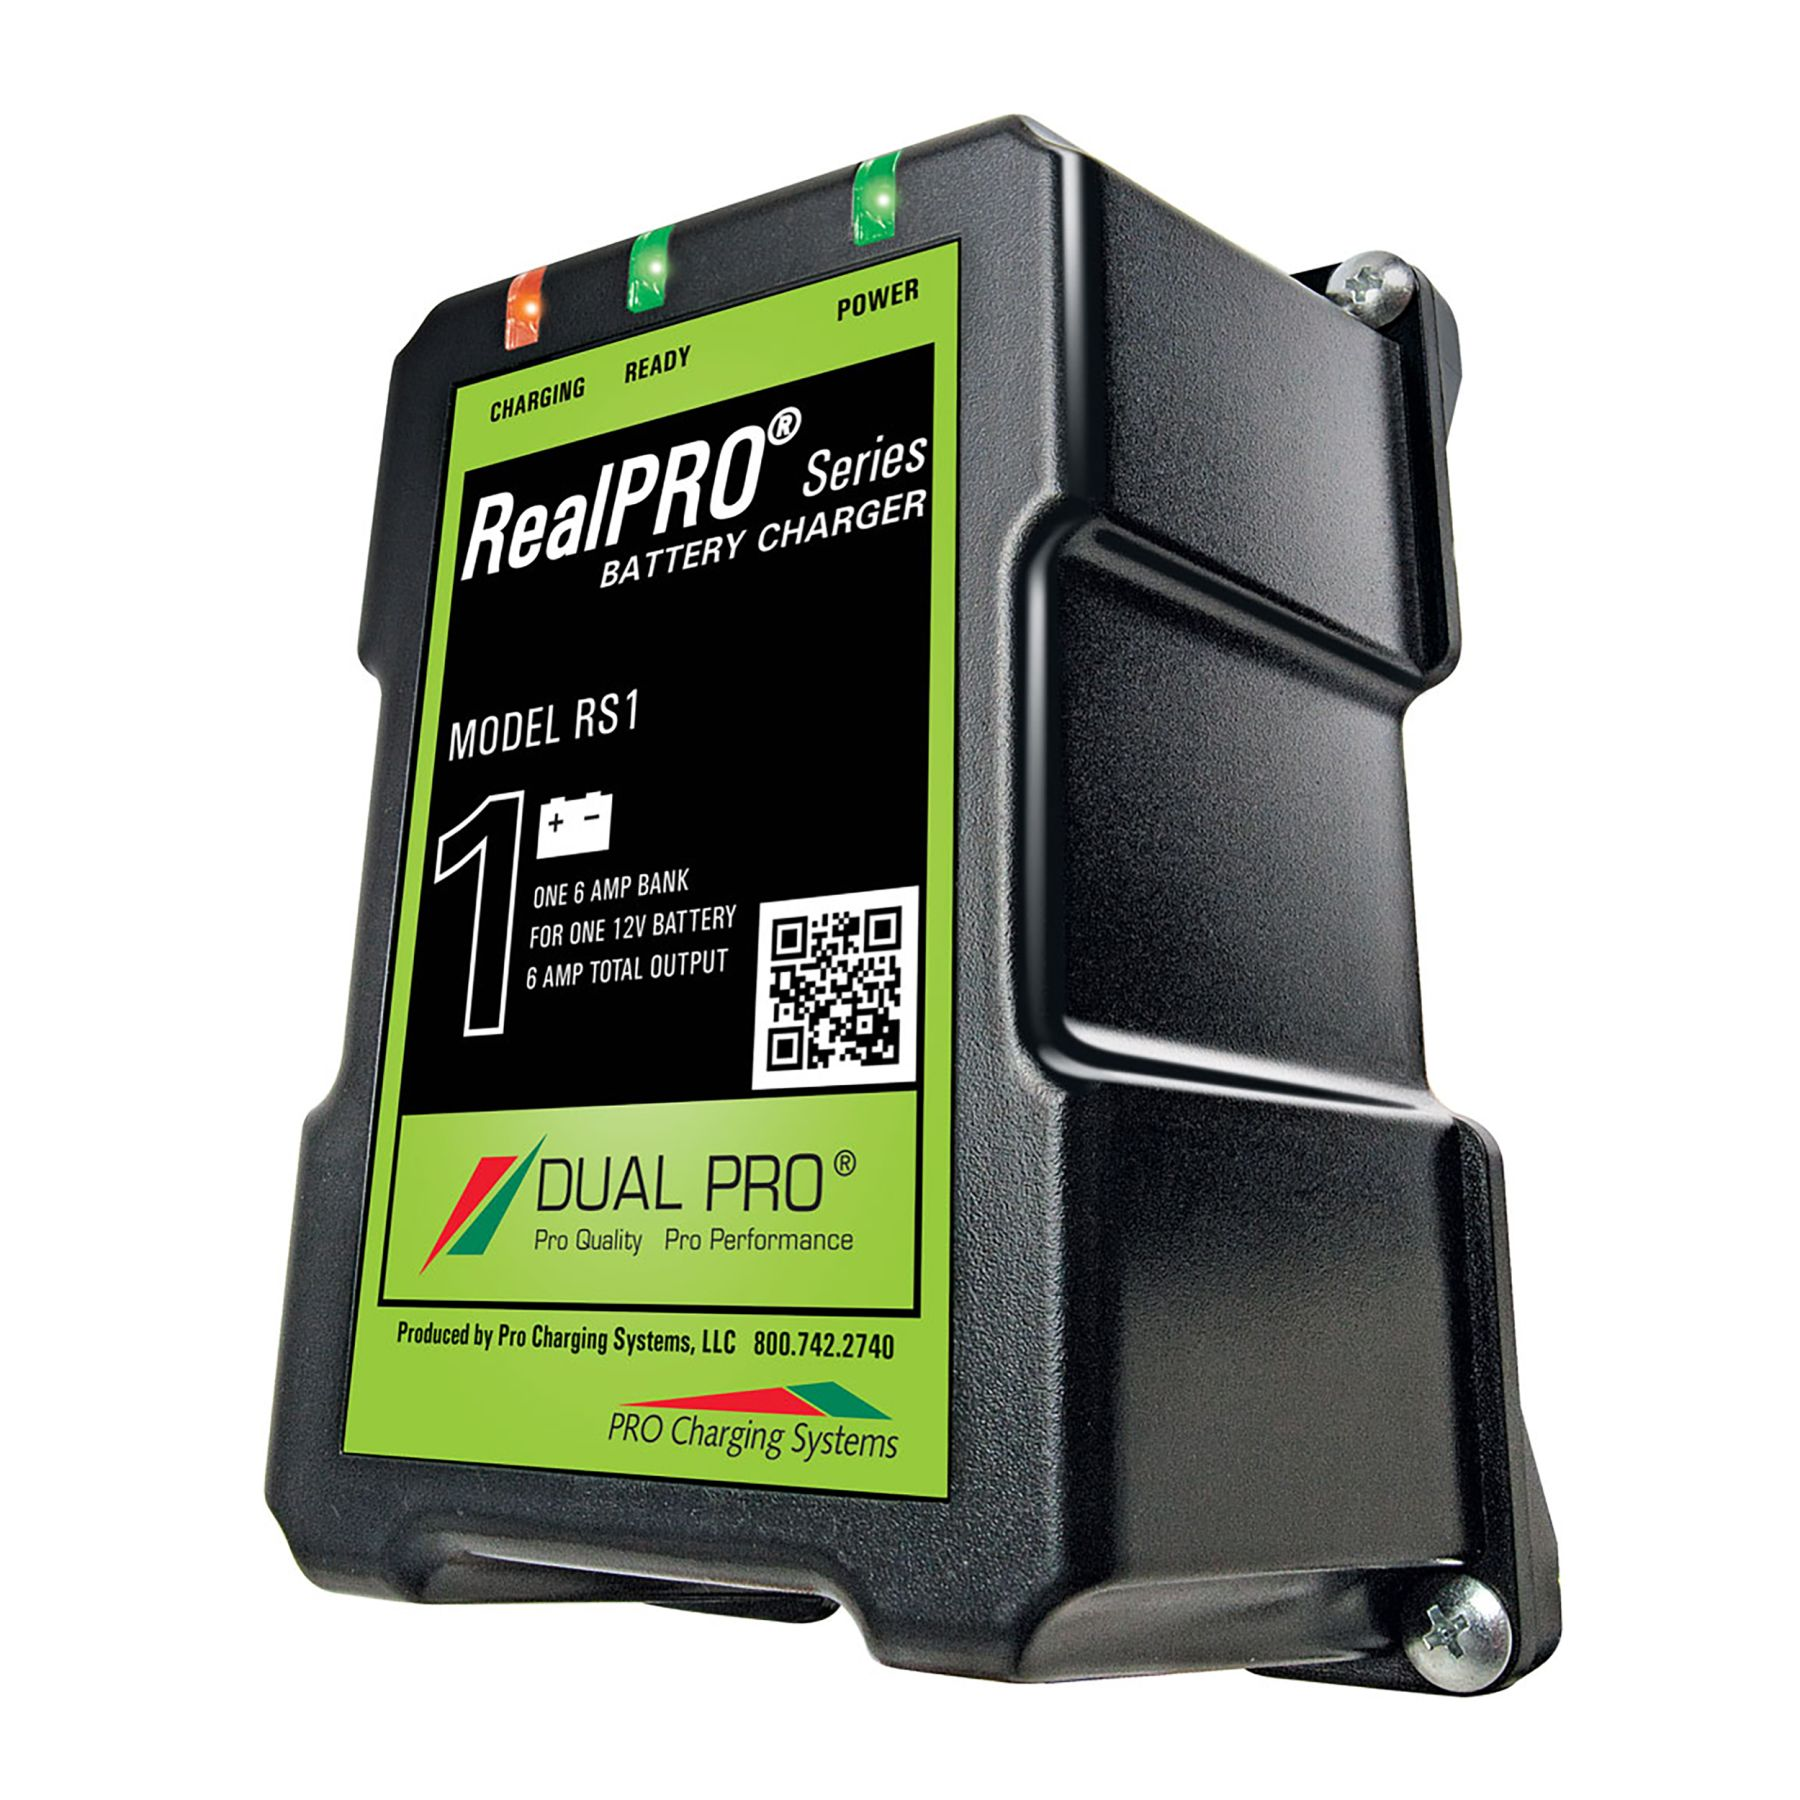 Dual Pro 12v 6 Amp Realpro Waterproof Smart Charger Rs1 Powerfull Power Supply 12 V 10 Ampere